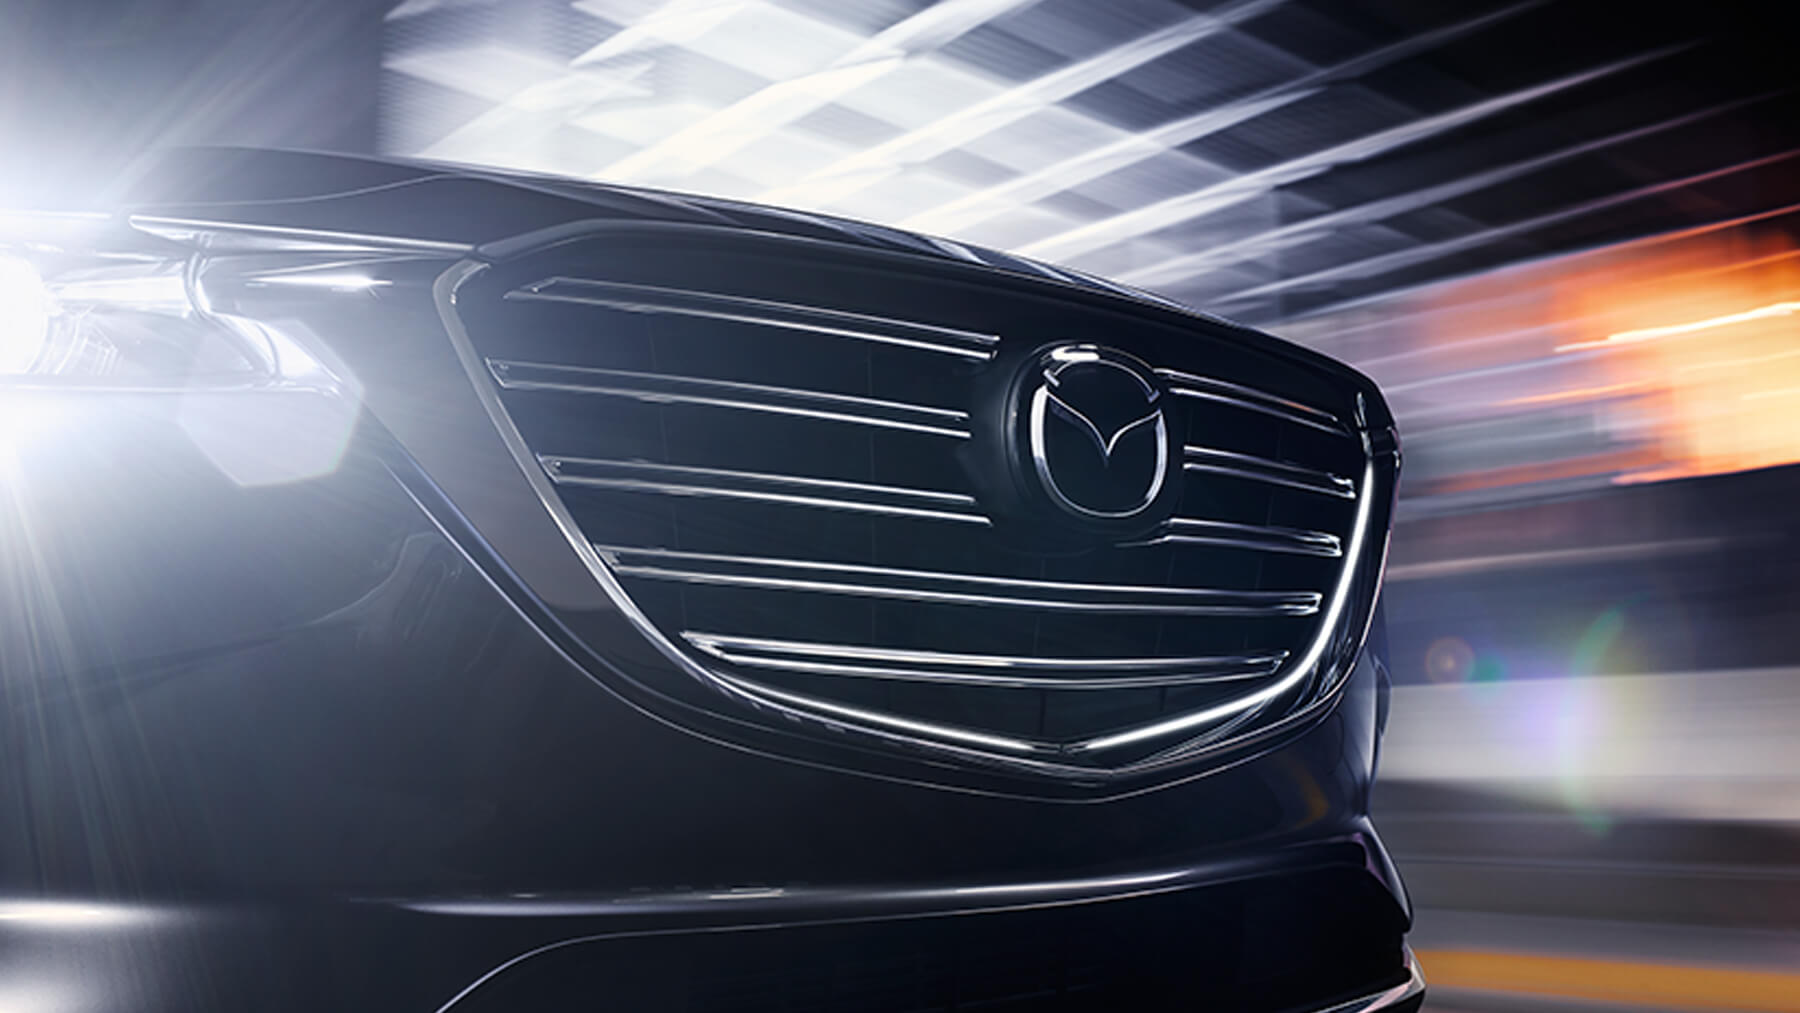 2016-cx9-front-grill-mde-cx9-gallery